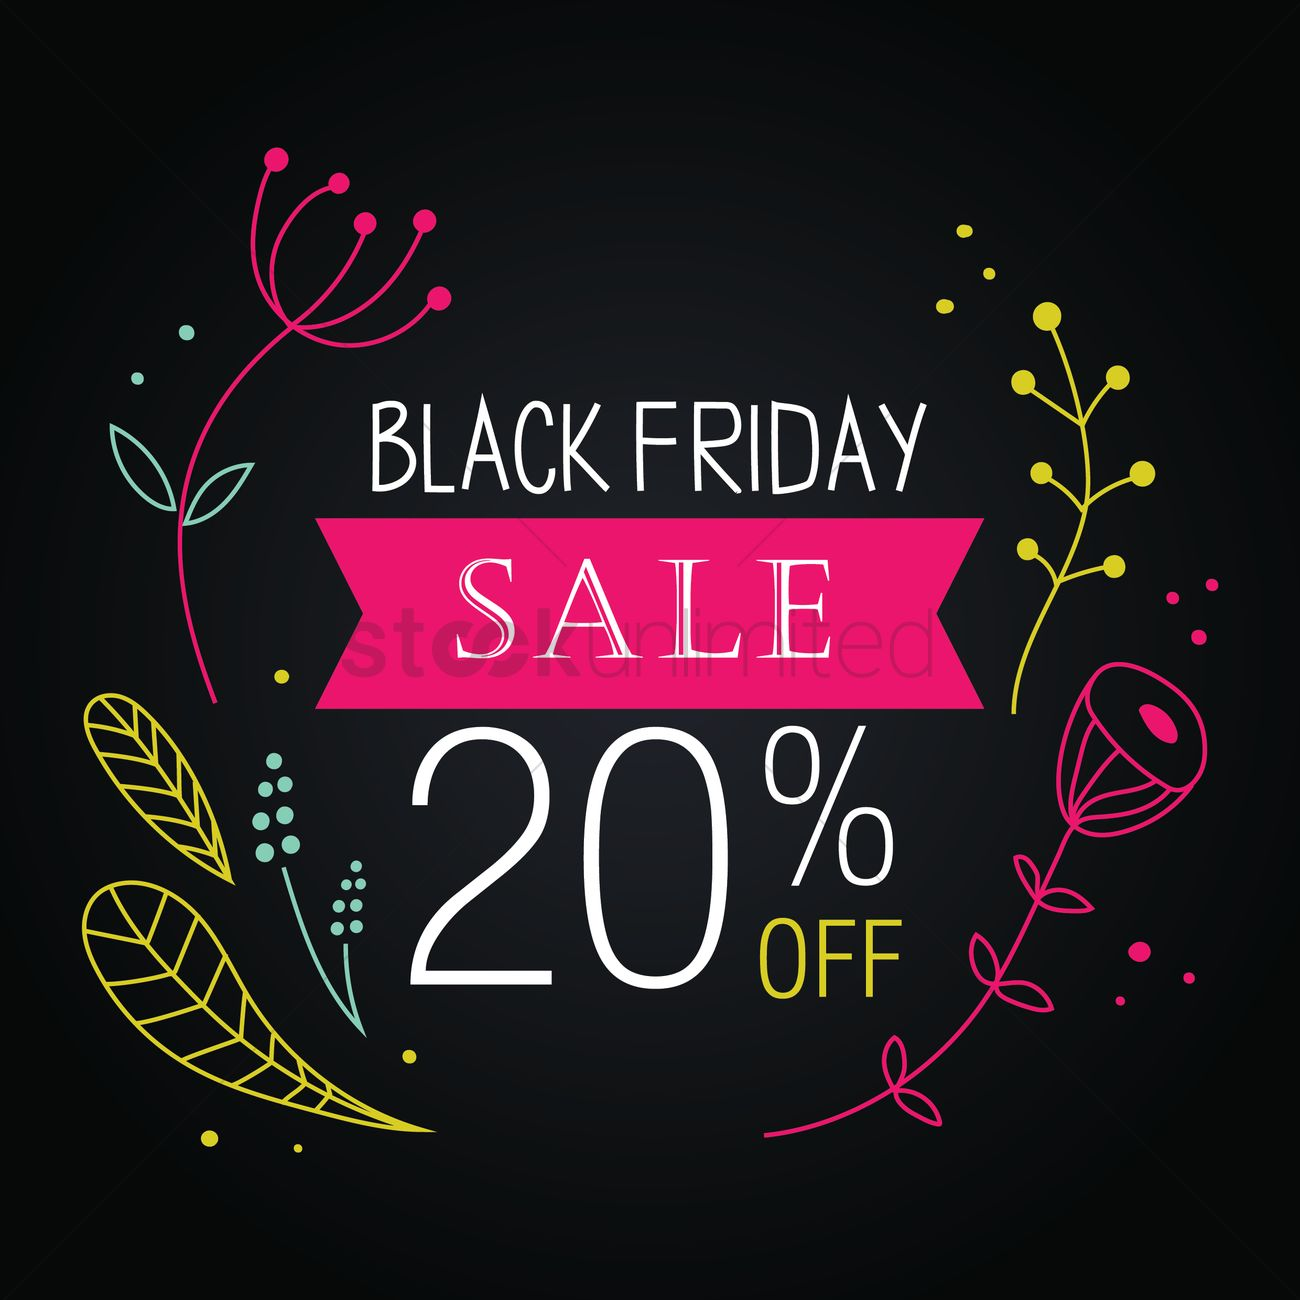 Black friday sale wallpaper Vector Image   1583239 StockUnlimited 1300x1300